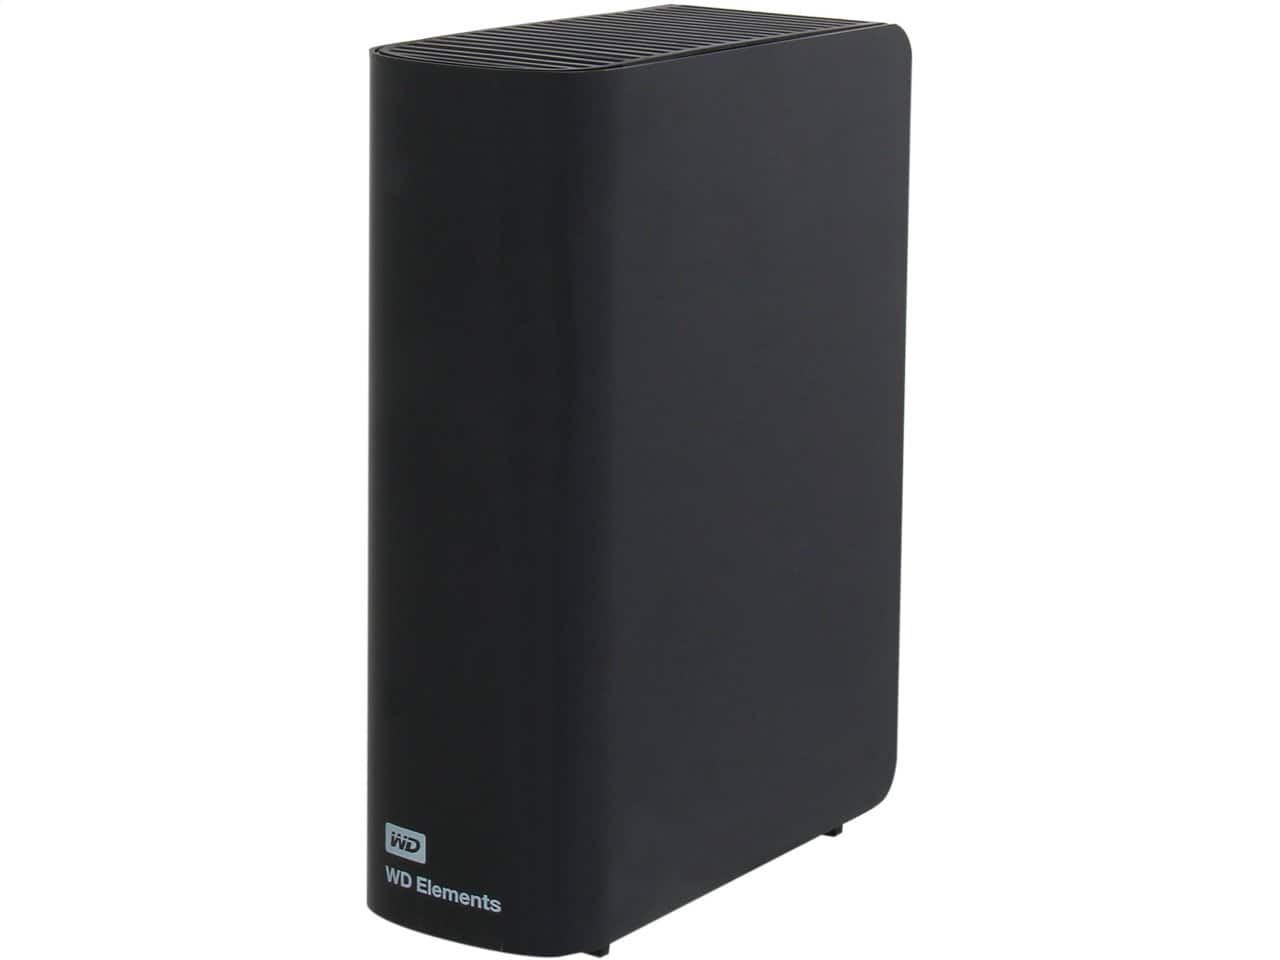 4 TB Western Digital Elements USB 3.0 External Desktop Hard Drive NESN) for(WDBWLG0040HBK- $99.99 AR (or less) + Free Shipping @ TigerDirect.com